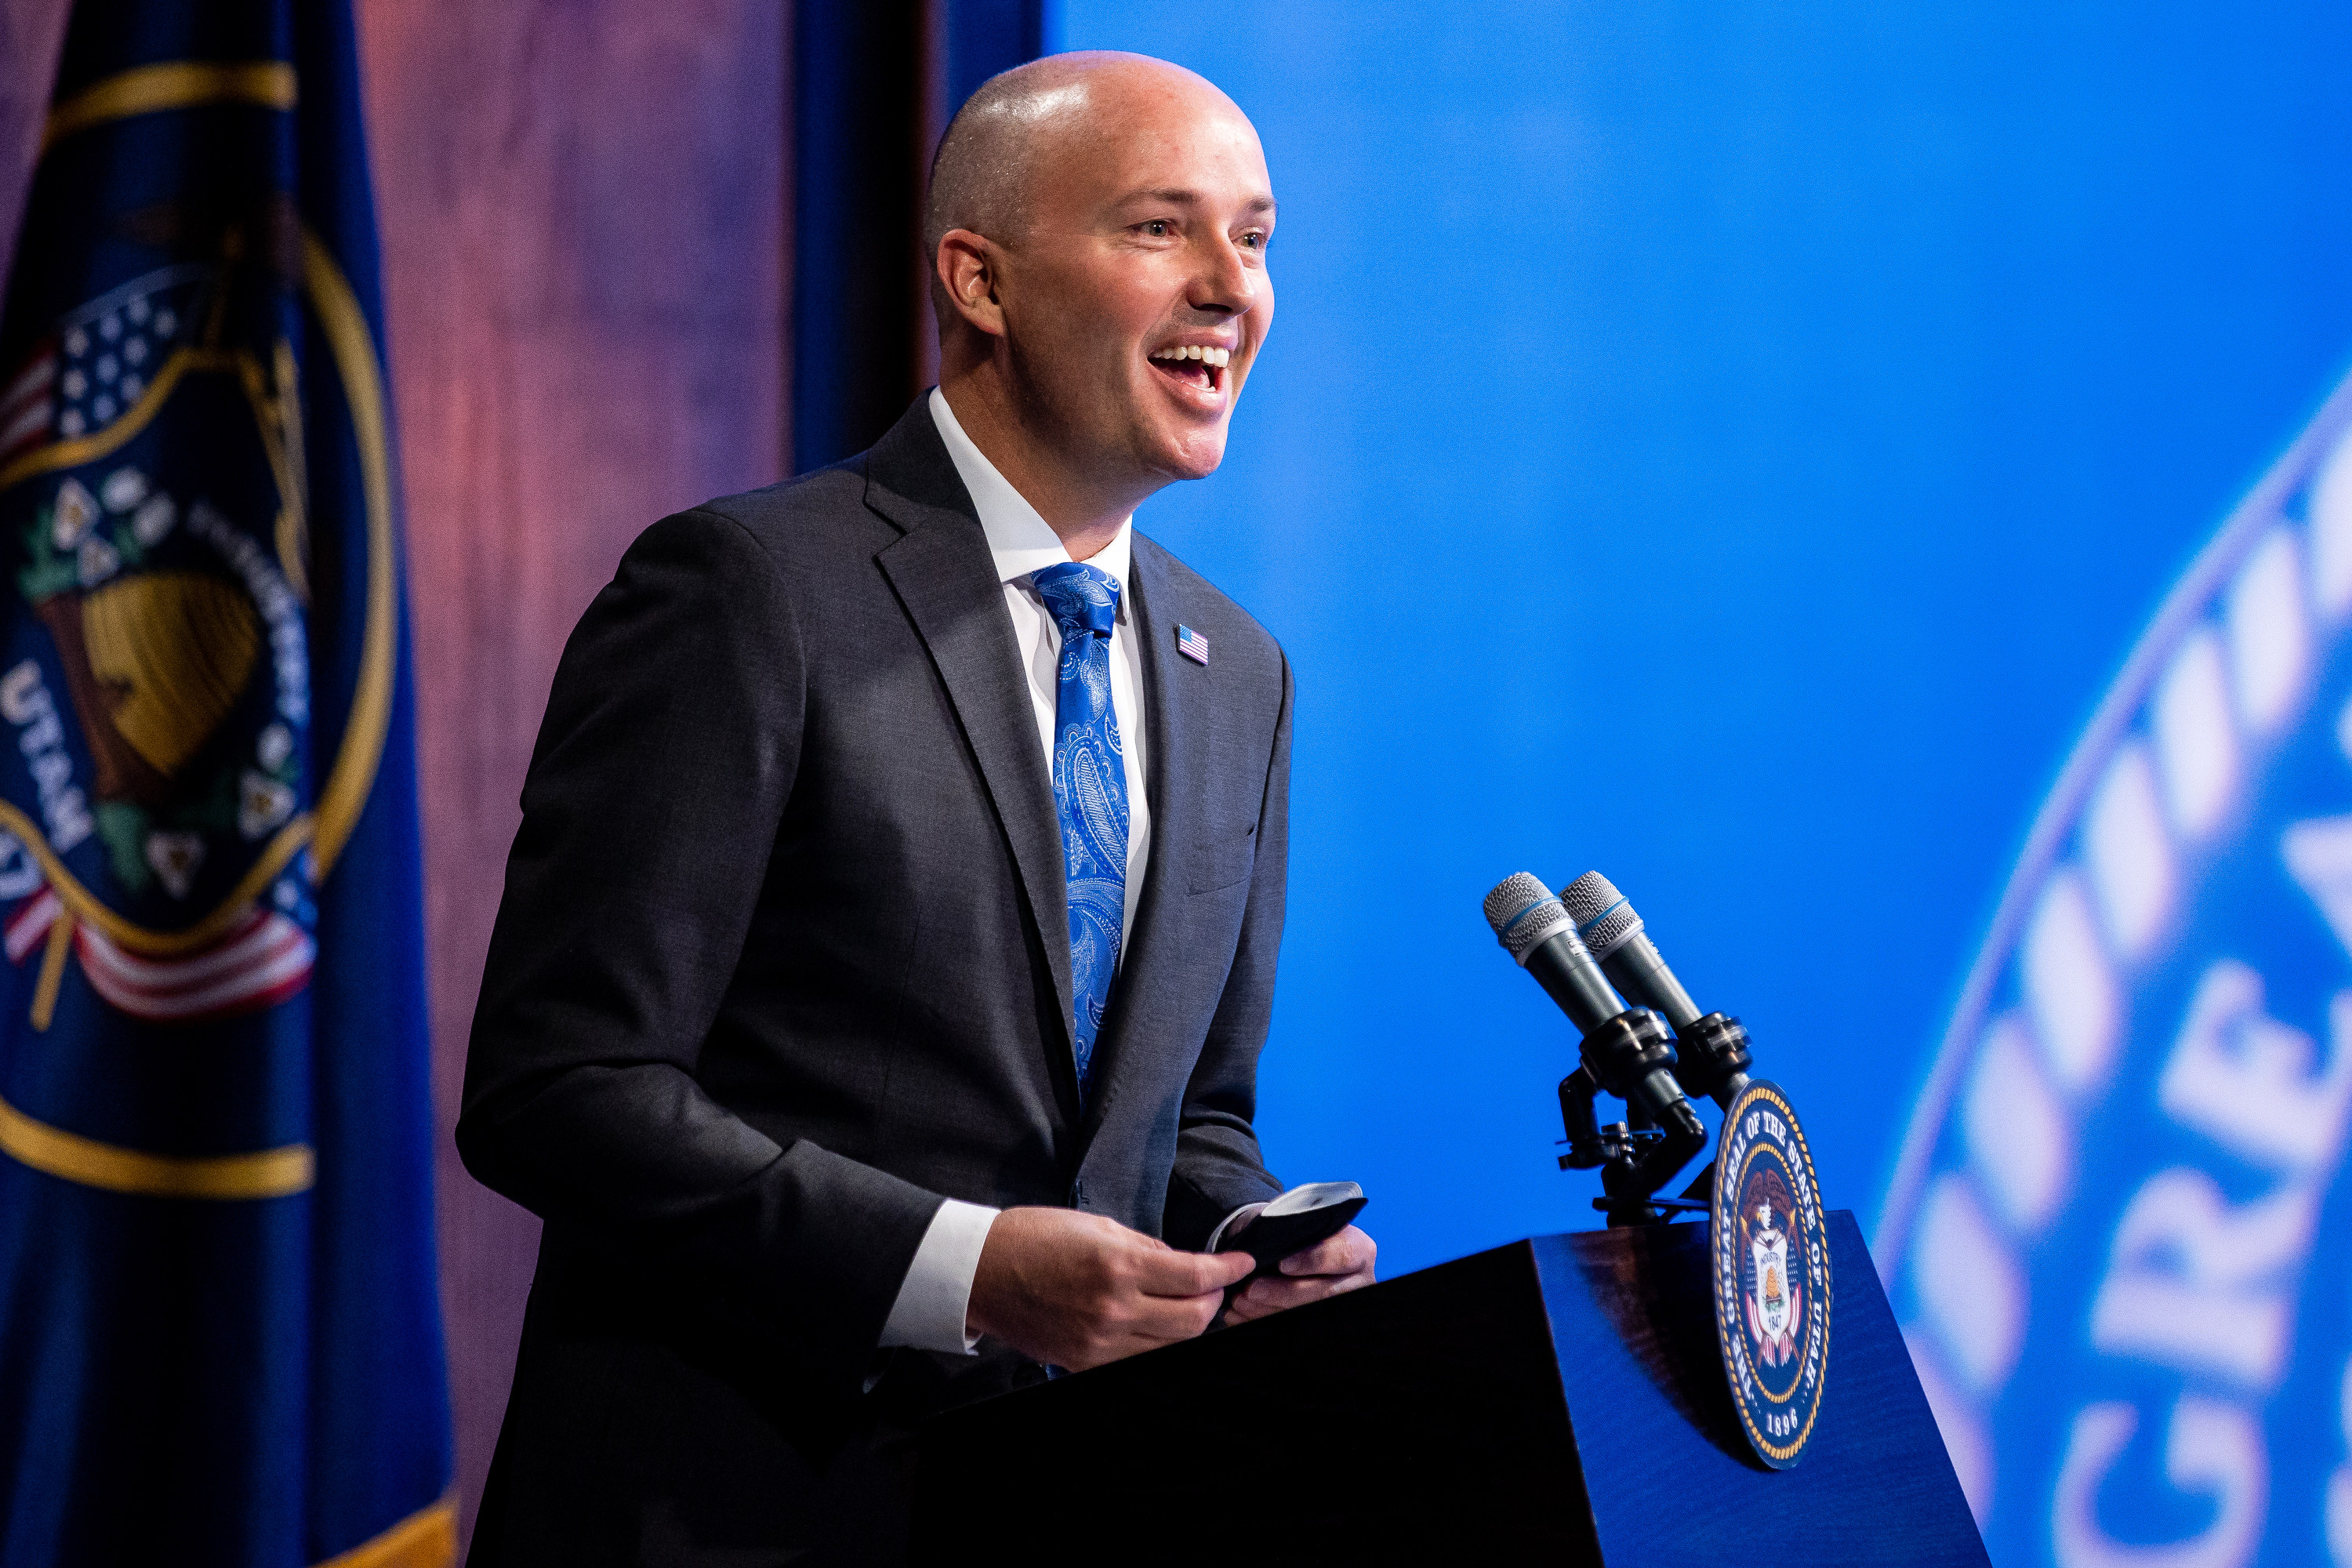 Gov. Spencer Cox speaks during his monthly news conference at PBS Utah in Salt Lake City on March 18, 2021.